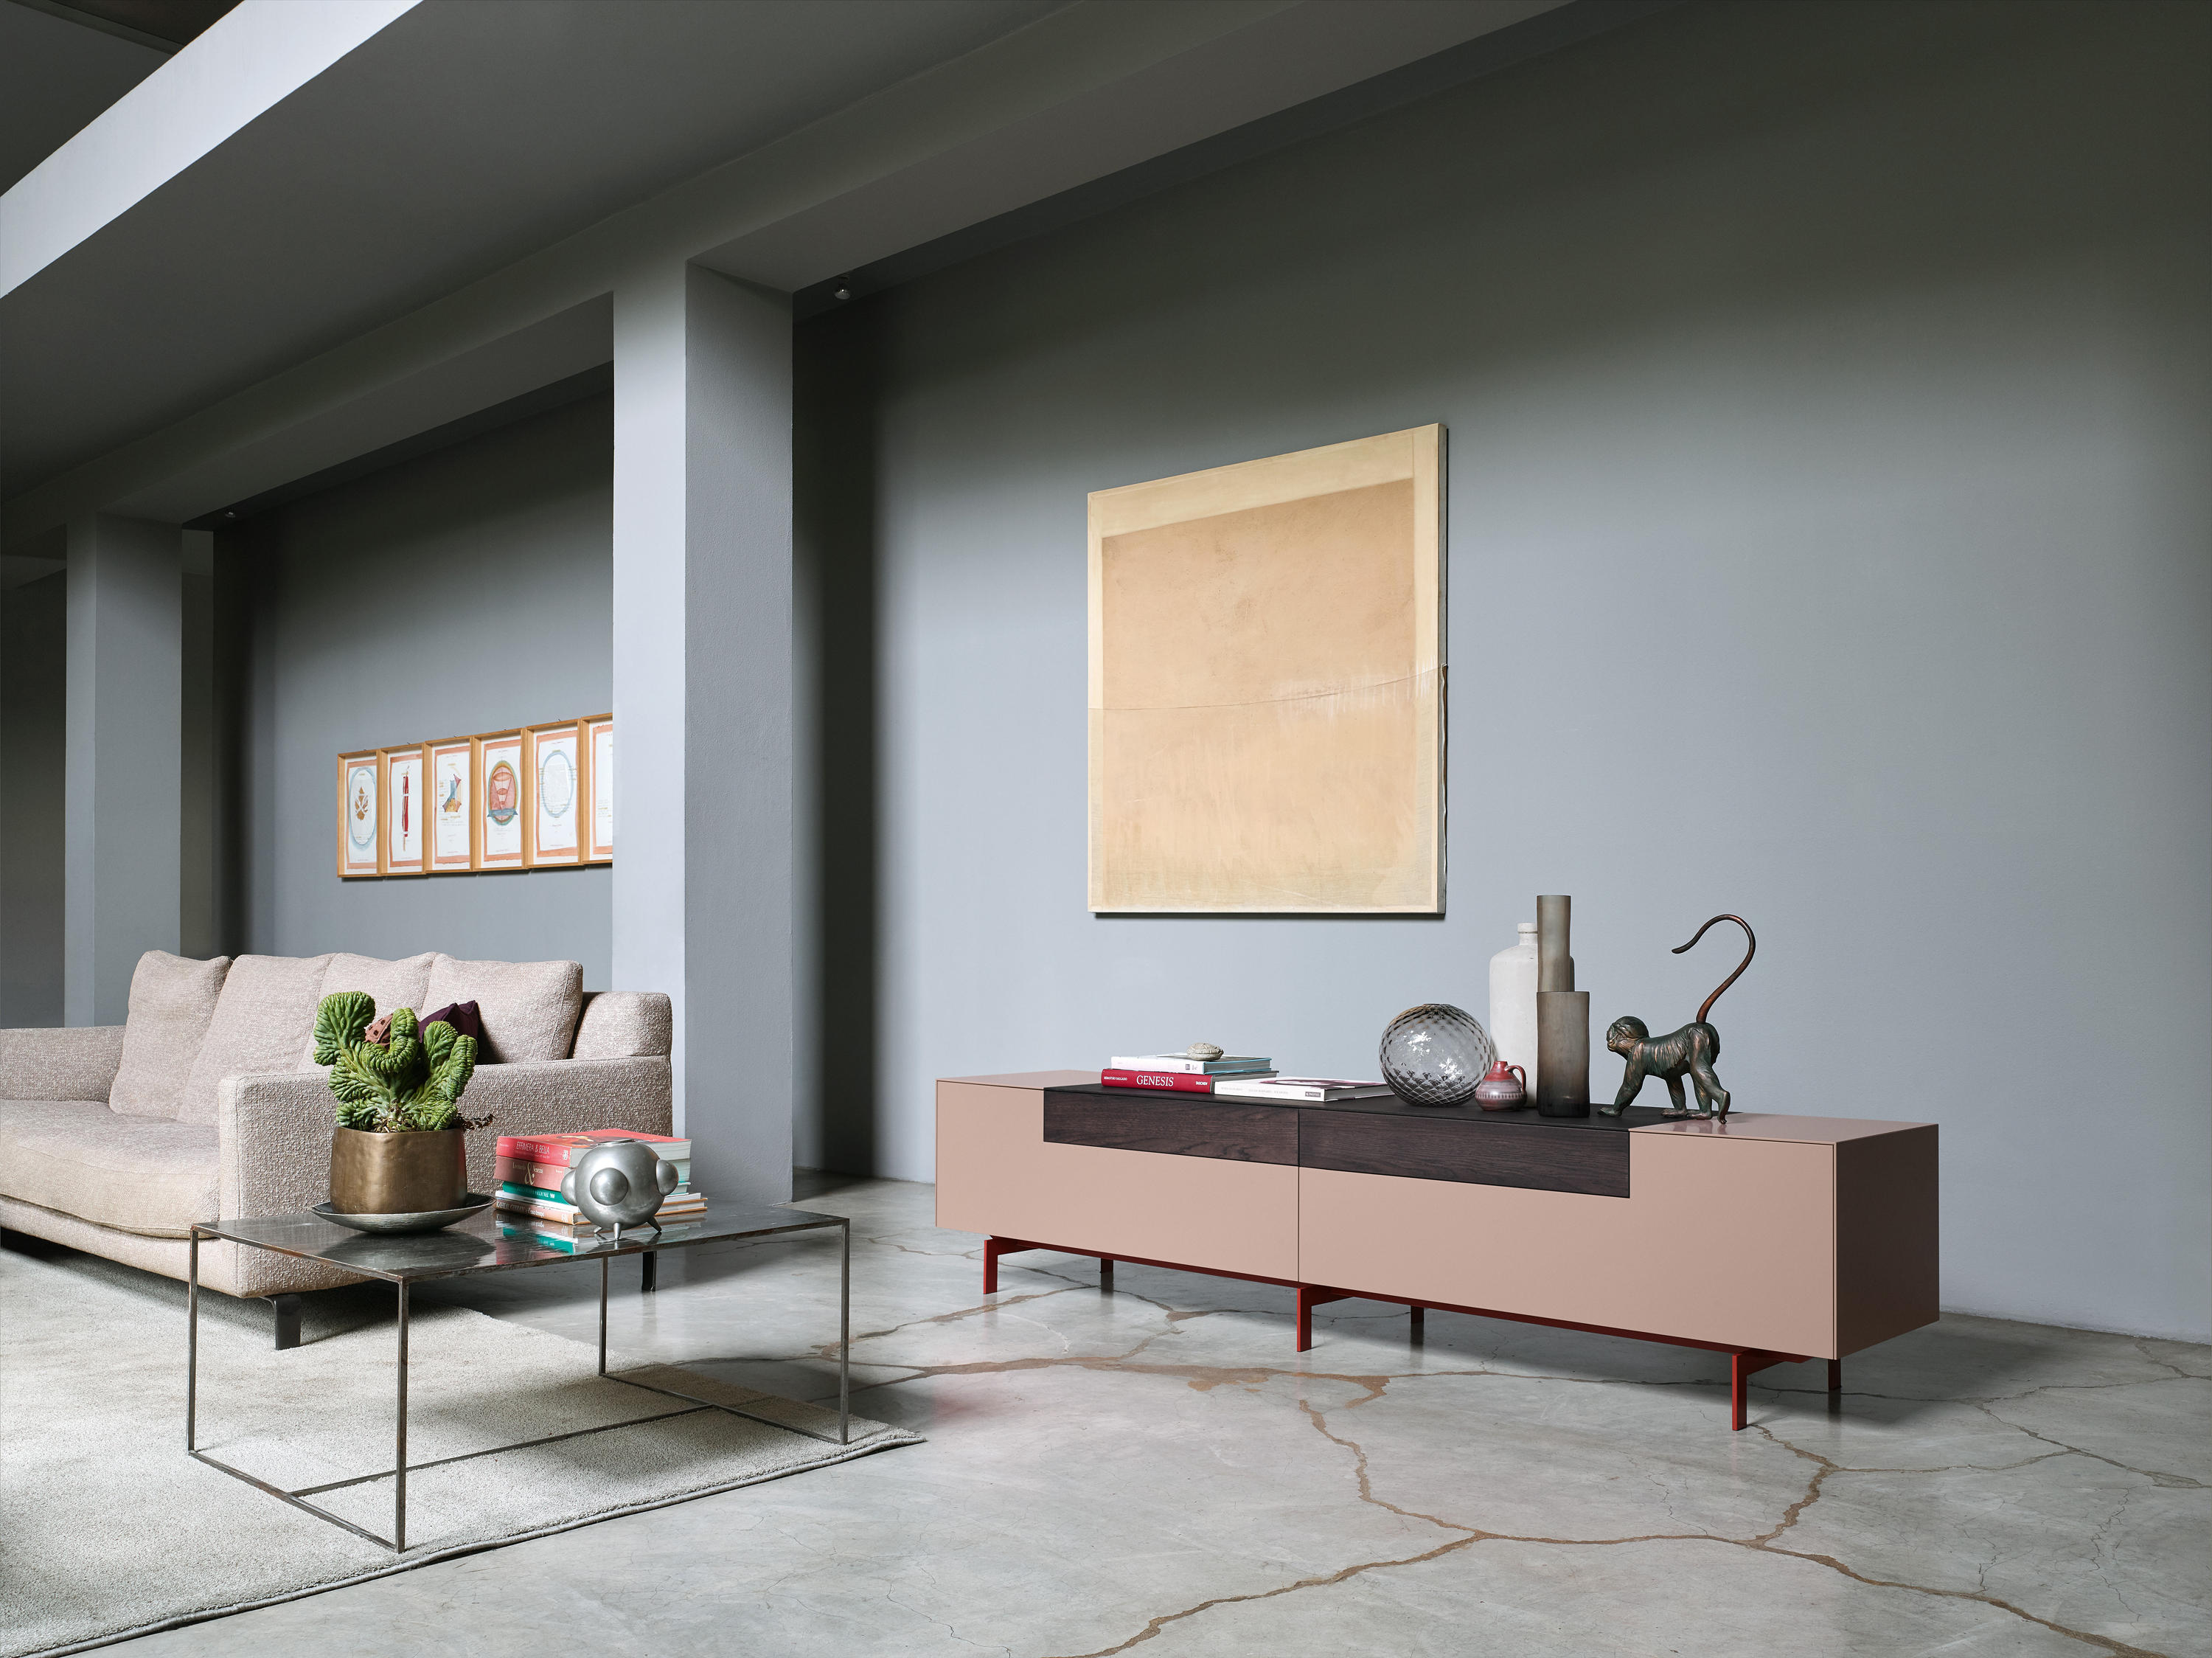 Nex Sideboard by Piure   Sideboards. NEX SIDEBOARD   Sideboards from Piure   Architonic